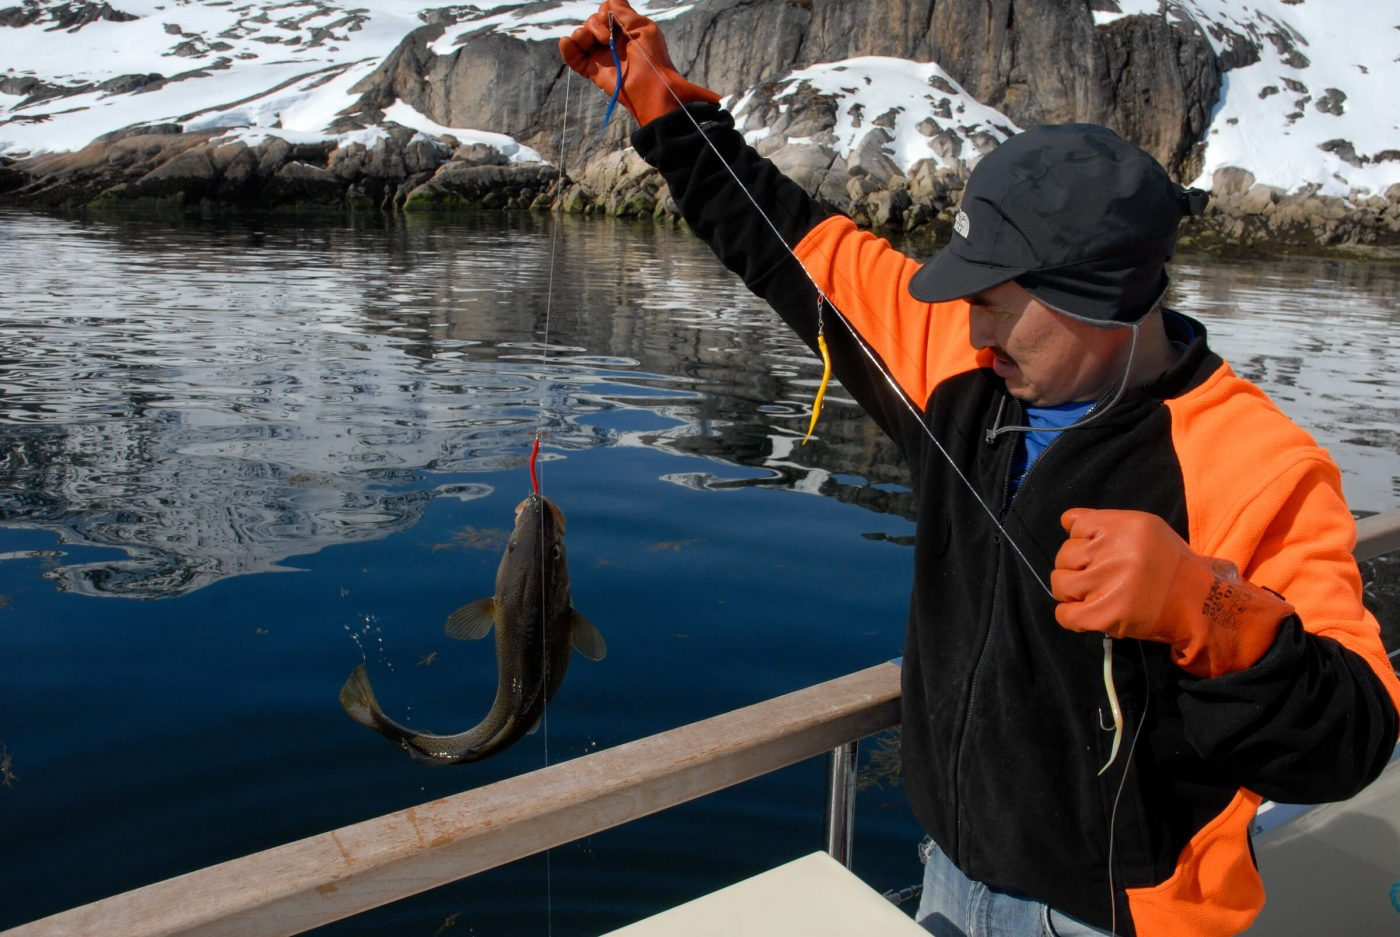 Fishing in the Eternity Fjord in West Greenland. Photo by Jörg Ehrlich